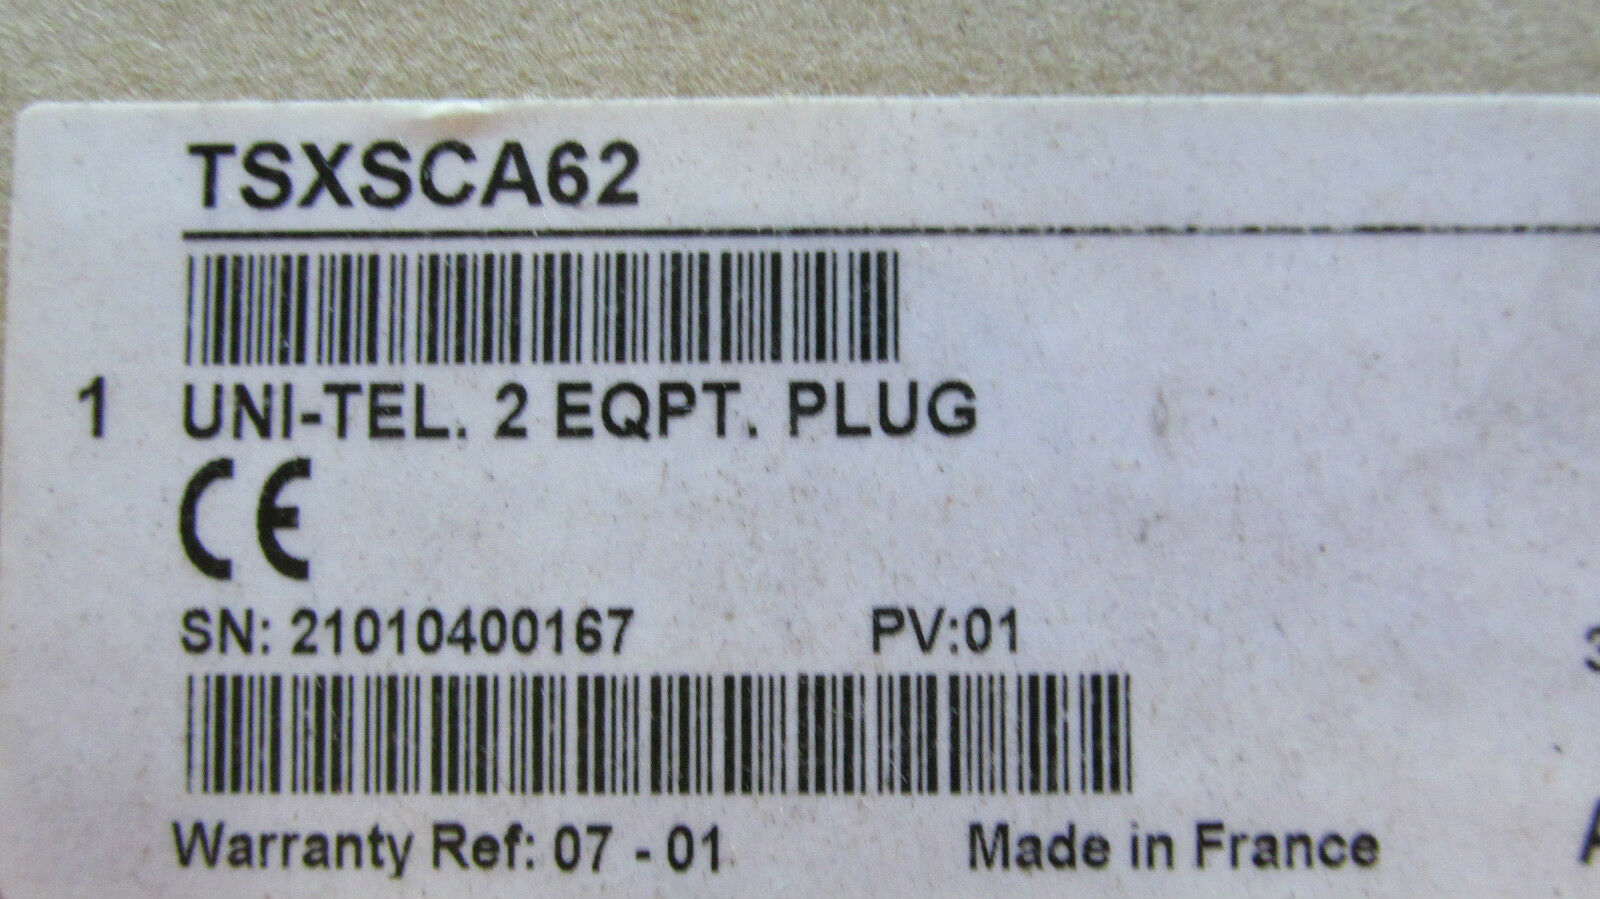 New in the BoxTelemecanique TSXSCA62 Uni-Tel 2QPT Plug Free Shipping